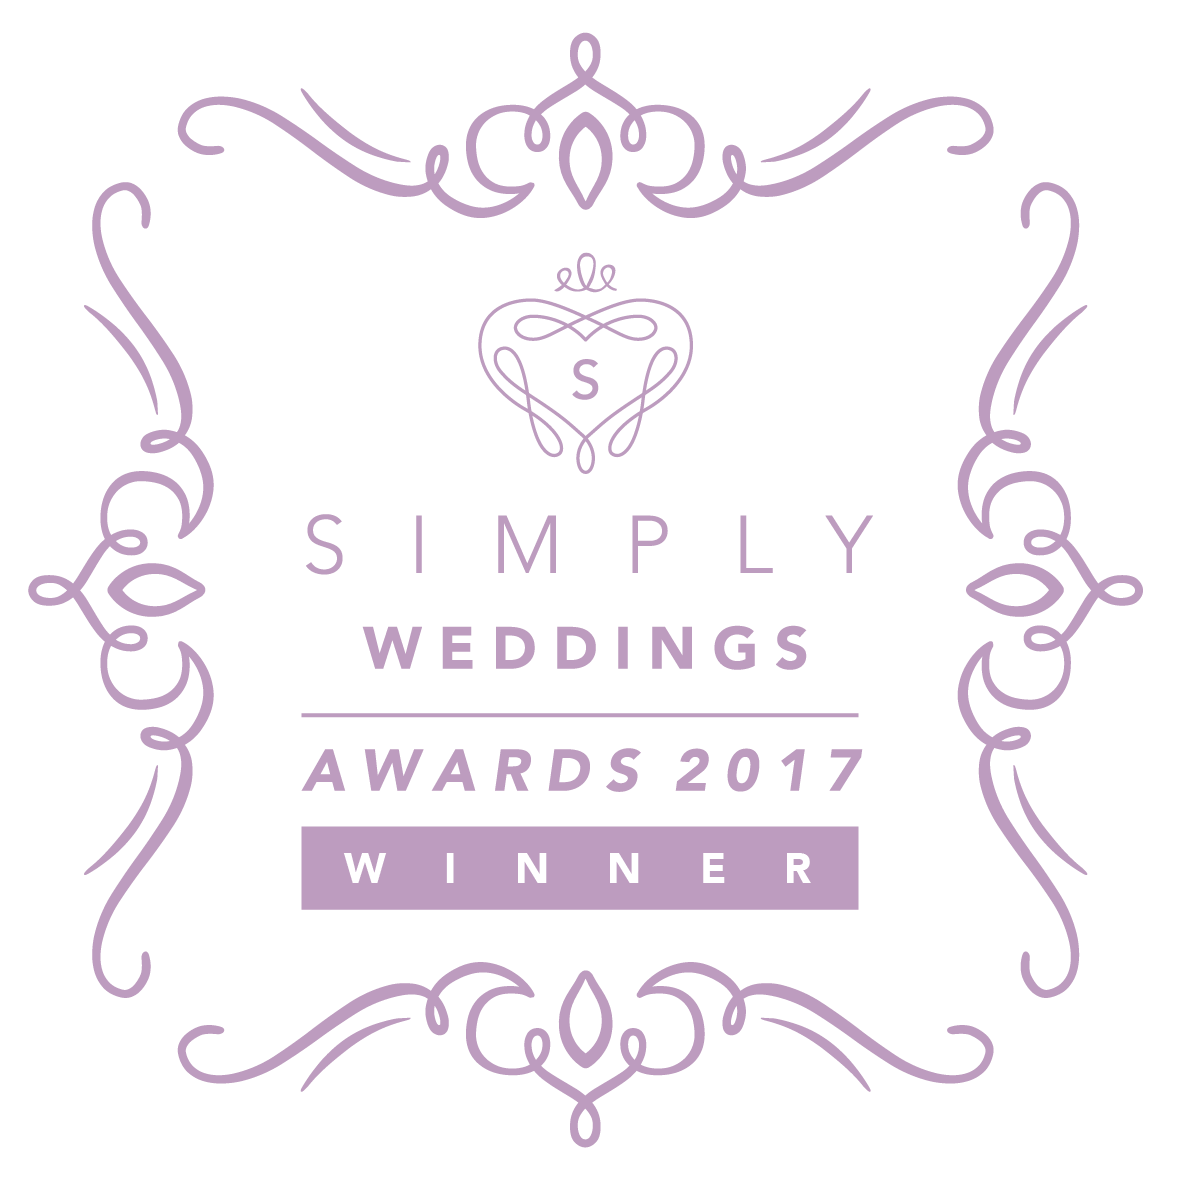 Award winning wedding photographer, award logo.